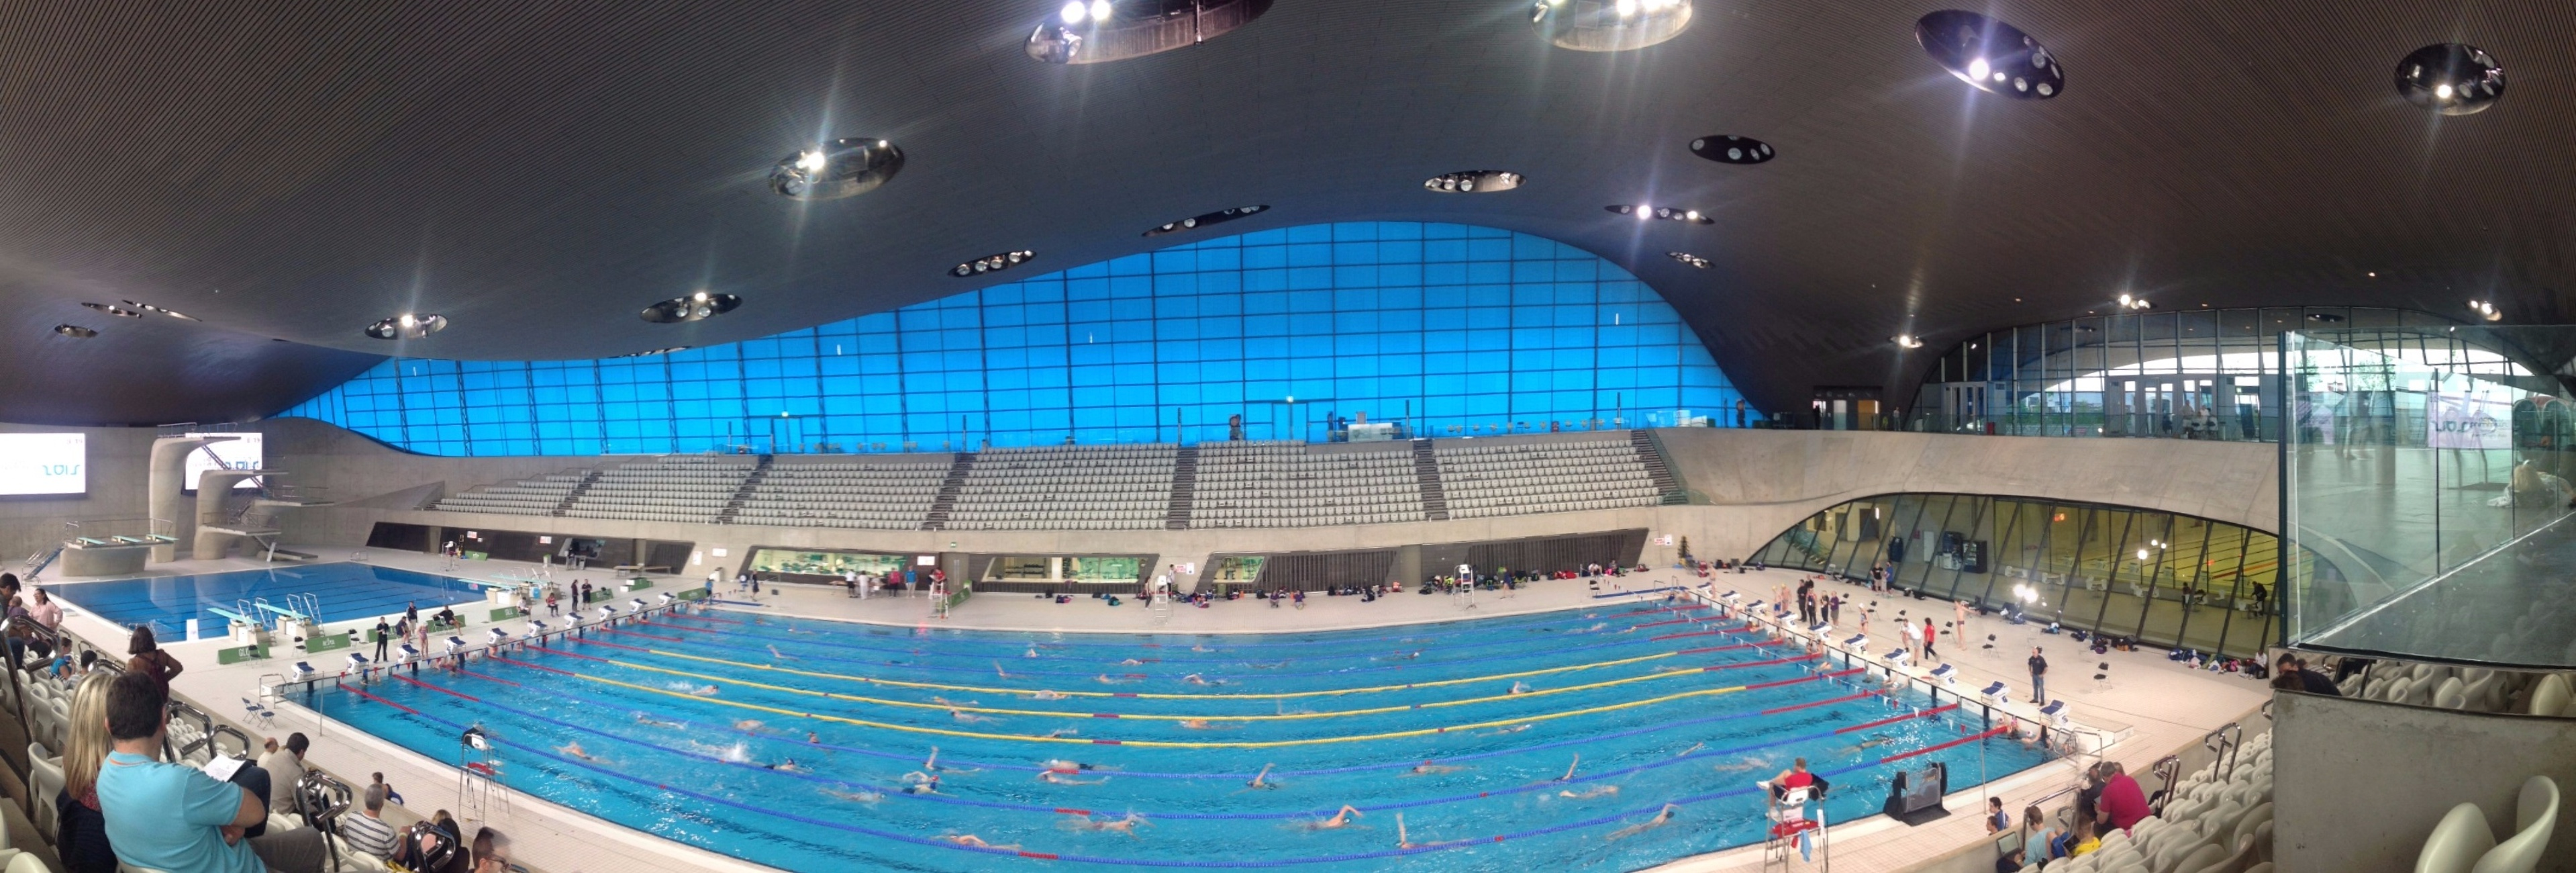 CIBSE Case Study London Olympic Aquatics Centre